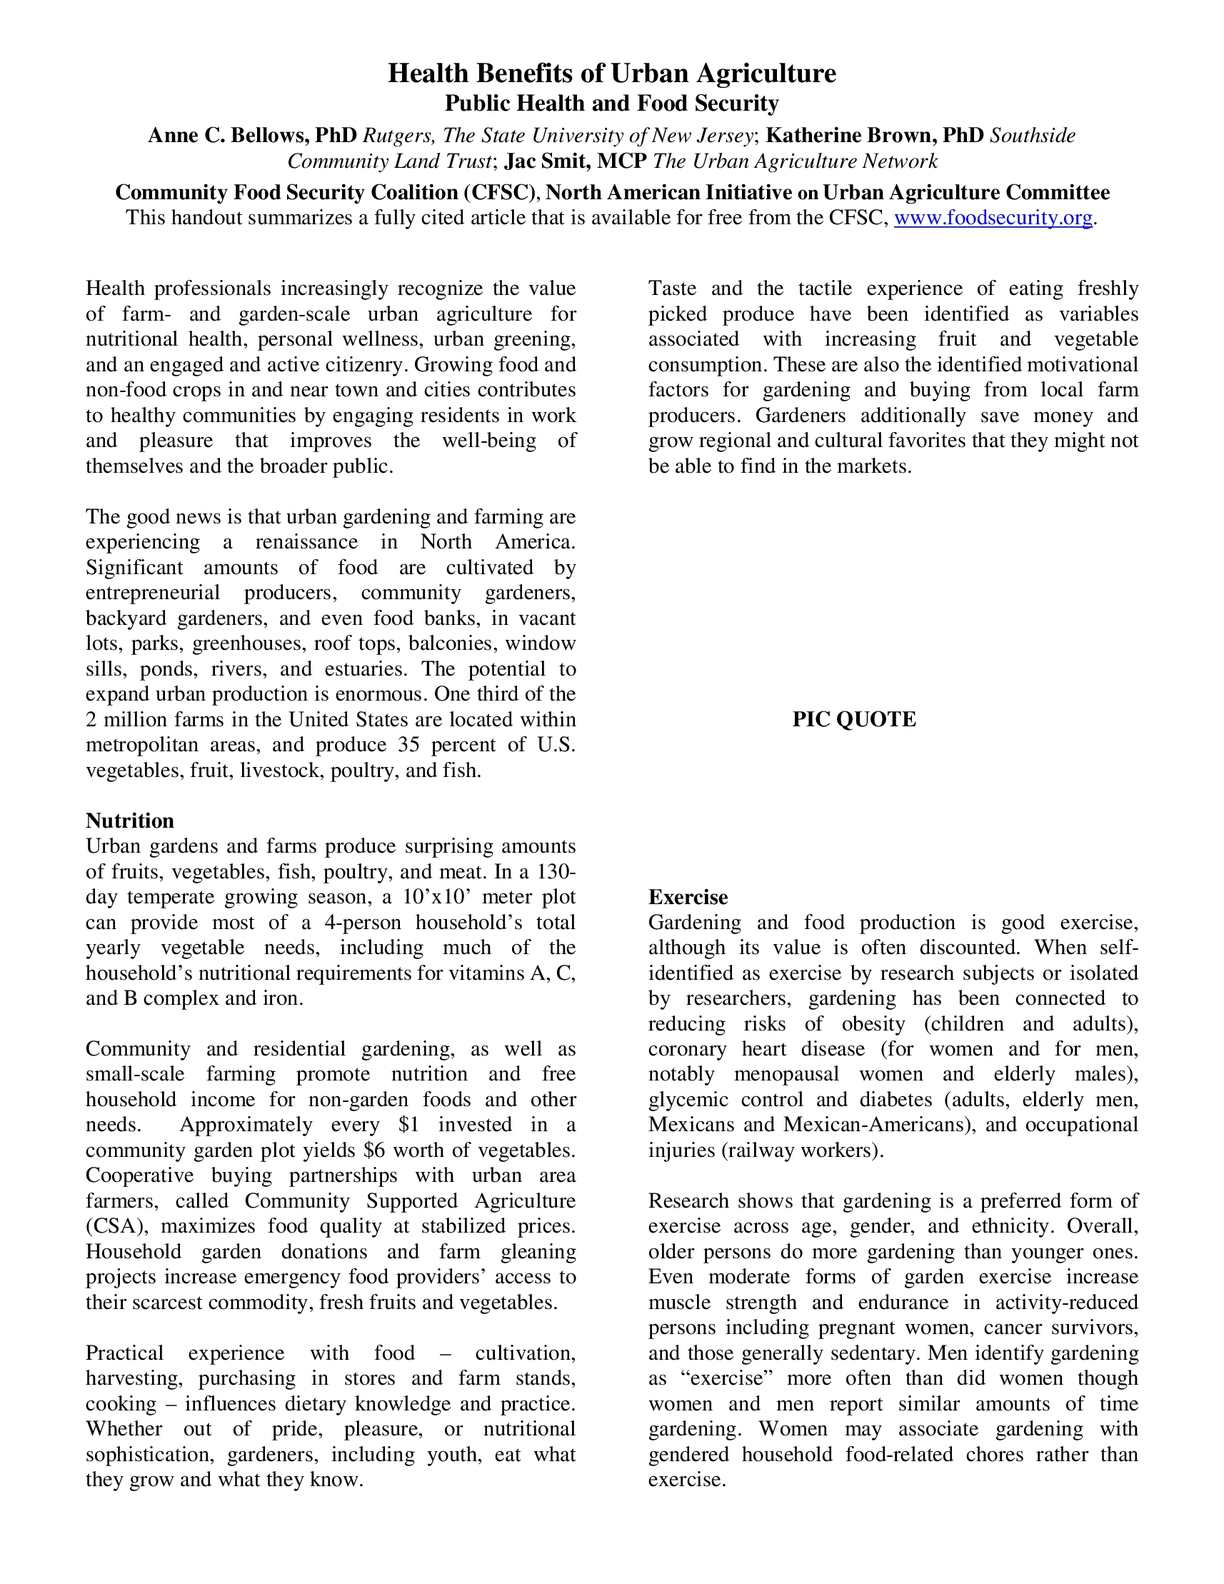 essay phrases to conclude portuguese